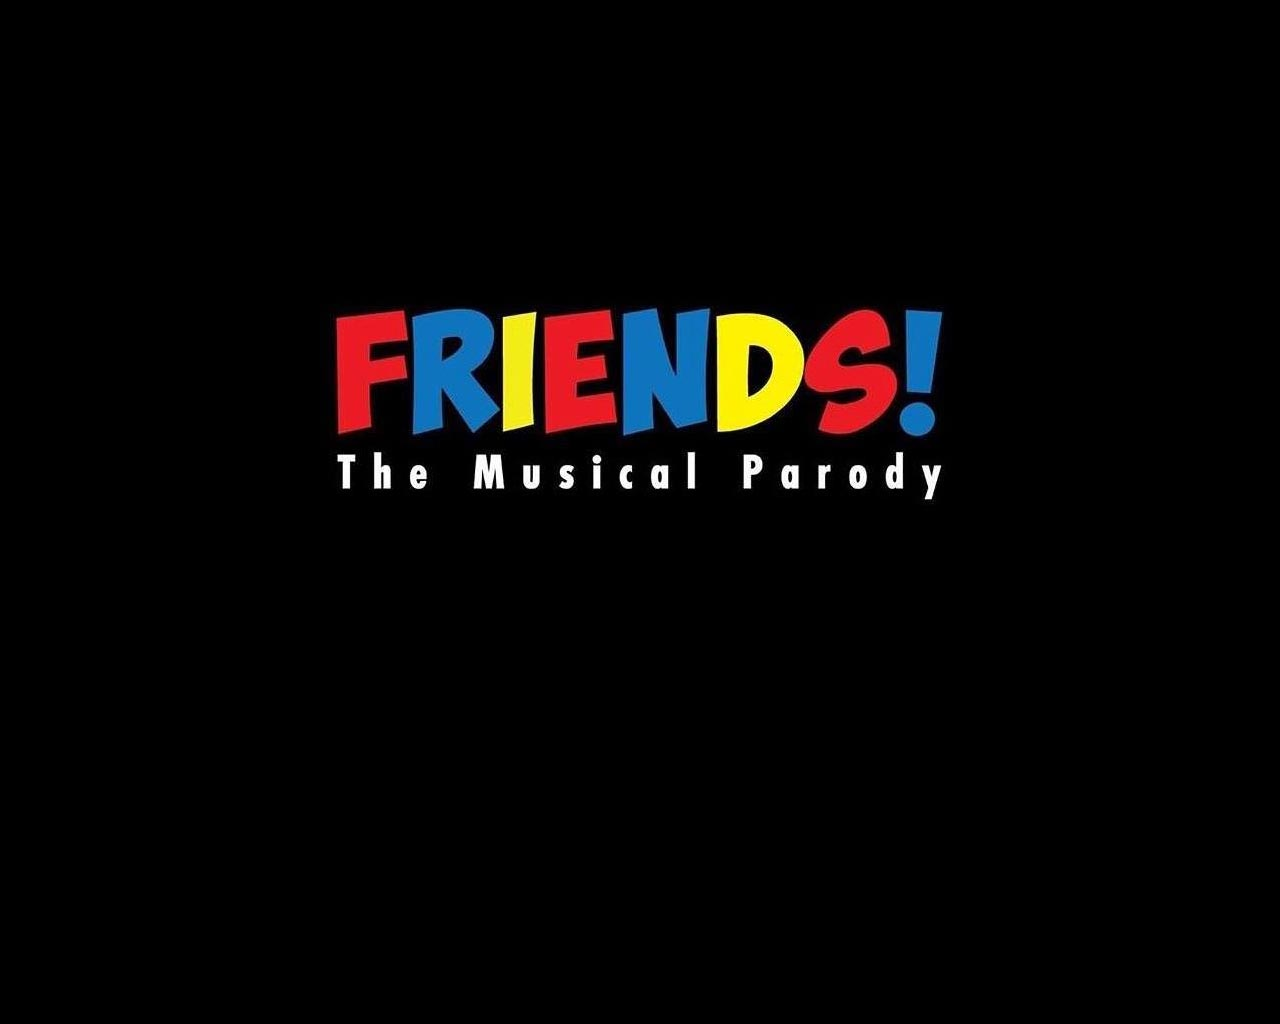 FriendsMusical